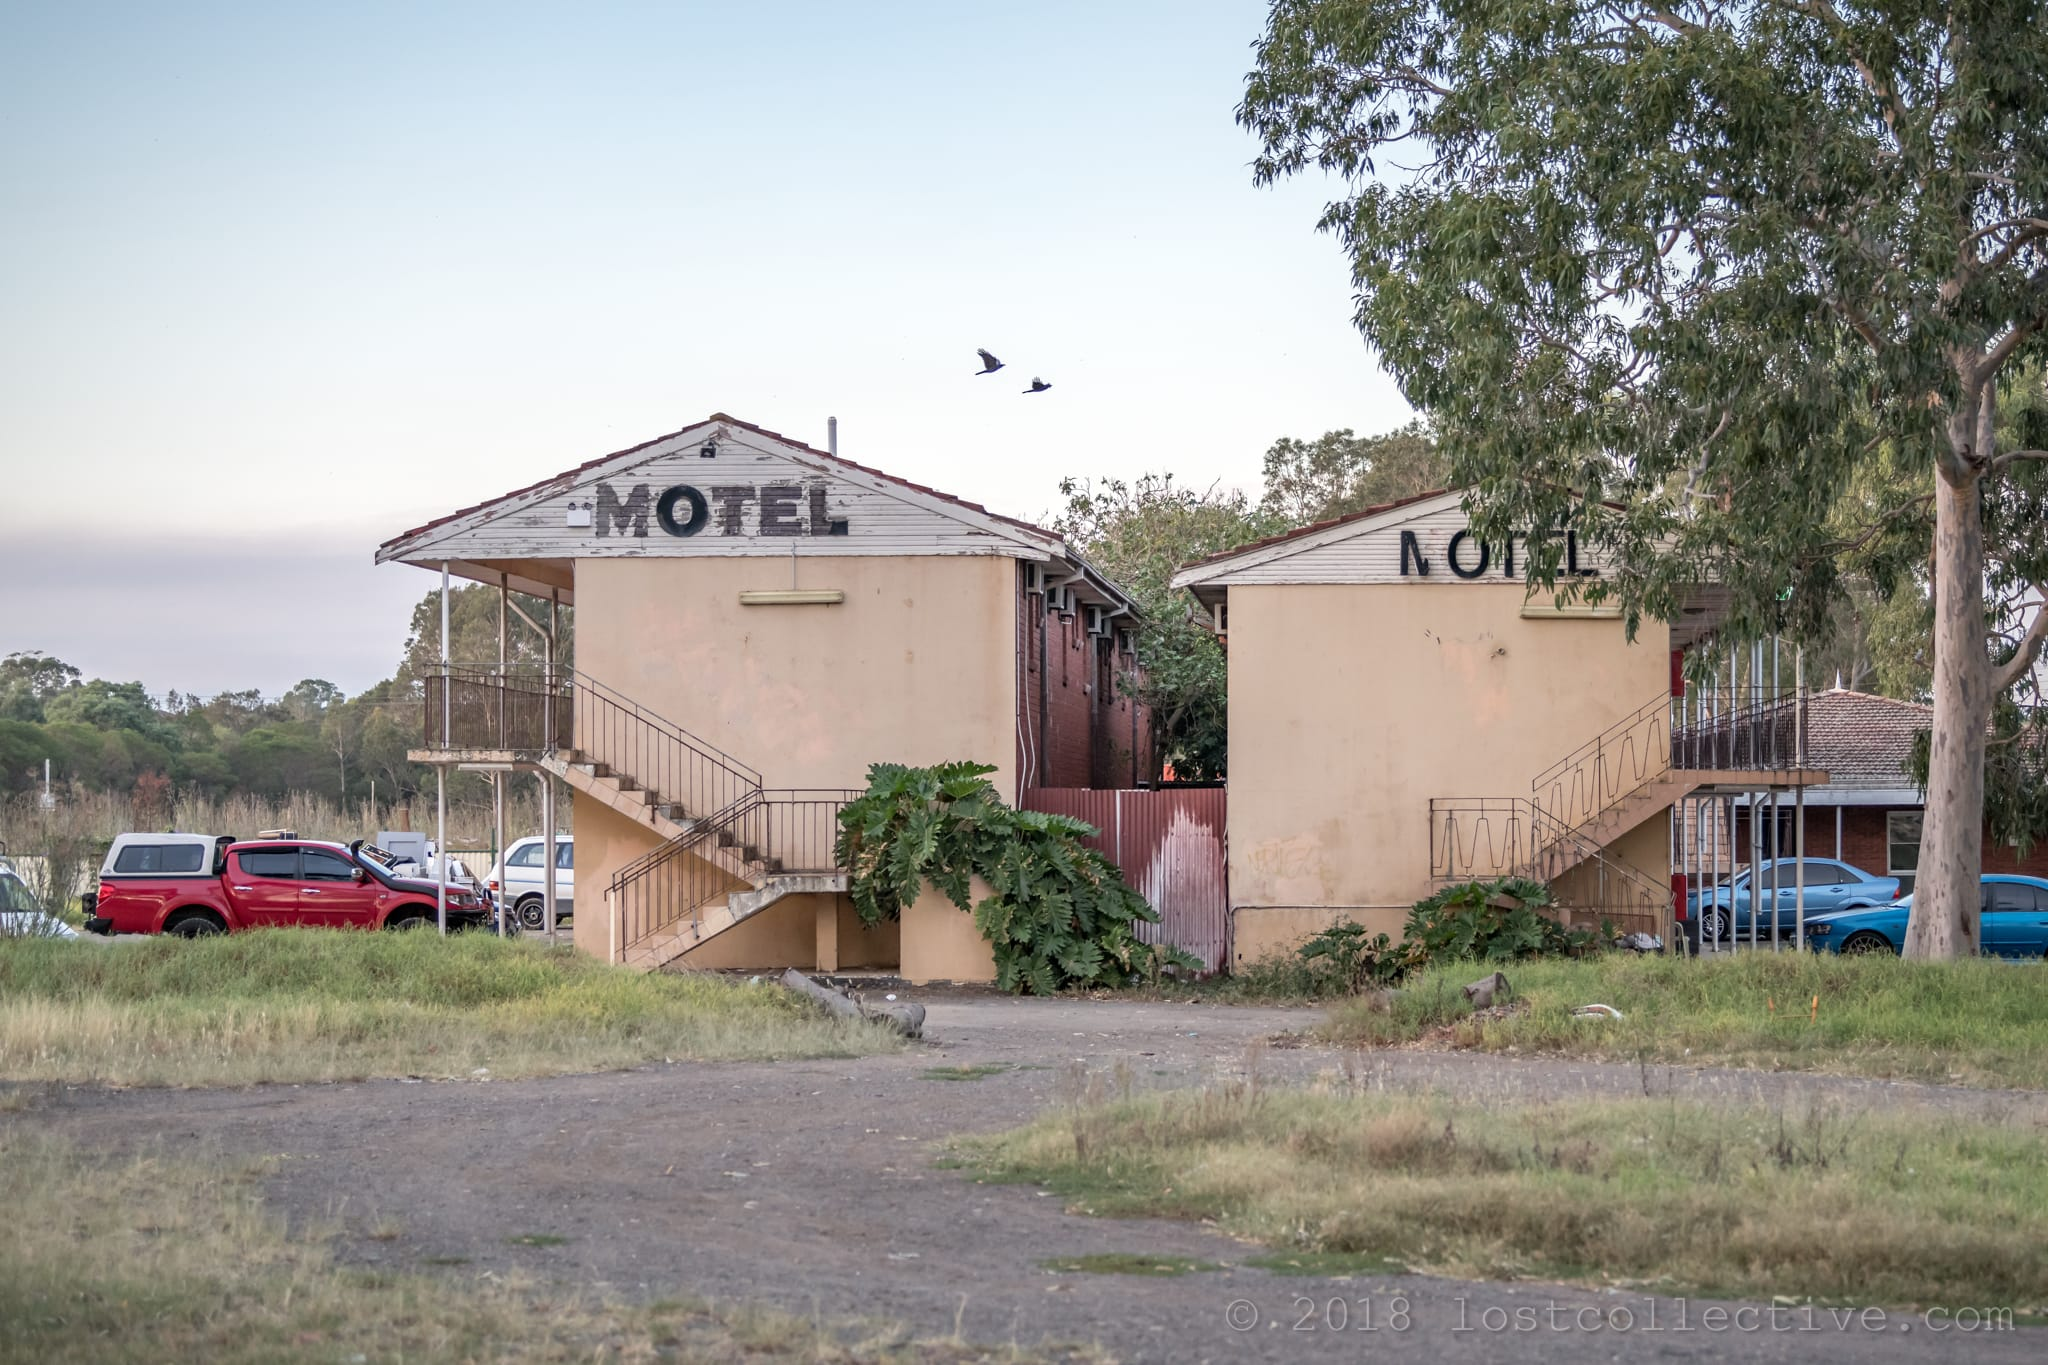 the side of a run down motel during the day with a gravel road, grass and trees - lost collective